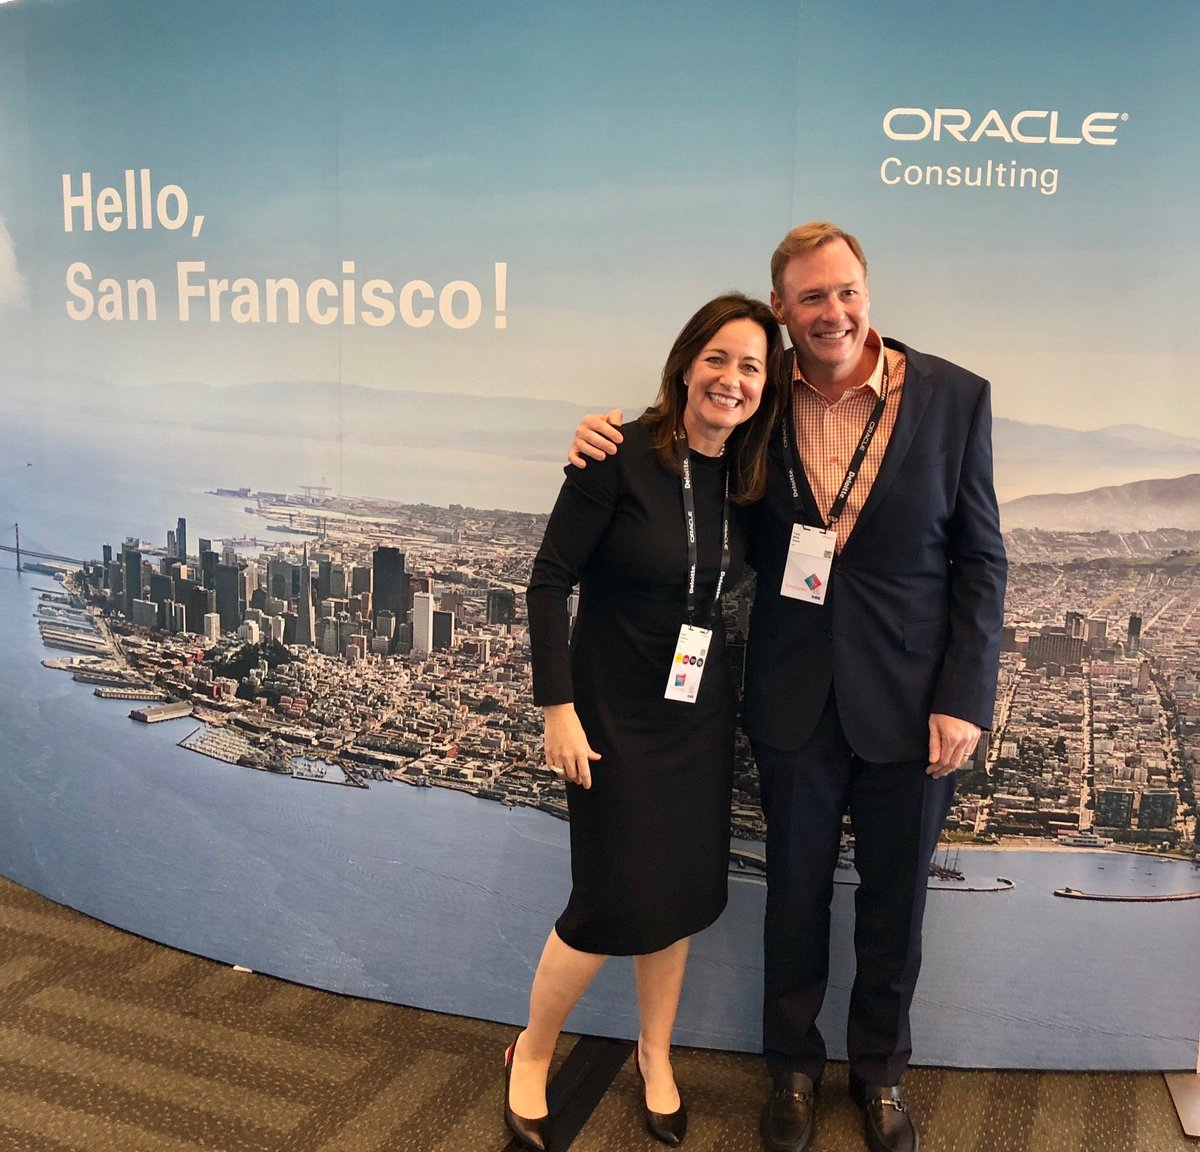 I can't wait for #OOW19! Come meet our incredible team and learn why nobody knows @Oracle Cloud Applications better than Oracle Consulting. #catapultcloudsuccess #oracleconsulting  http:// bit.ly/30bTxWs     <br>http://pic.twitter.com/79o5hr0rkT